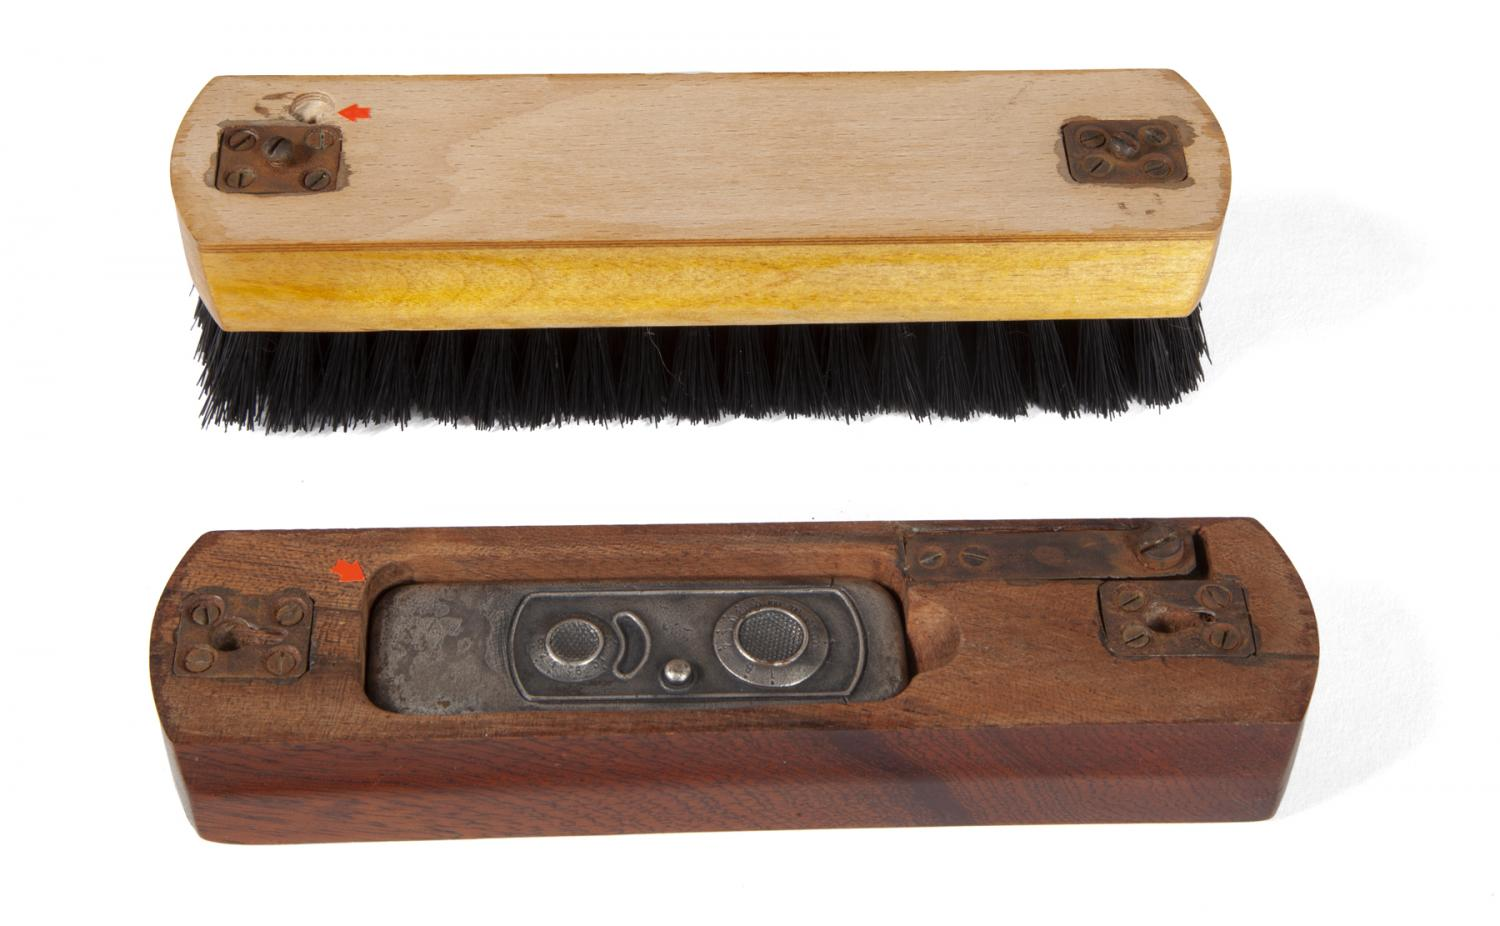 Shoebrush camera (Pic: Julien's Auctions)